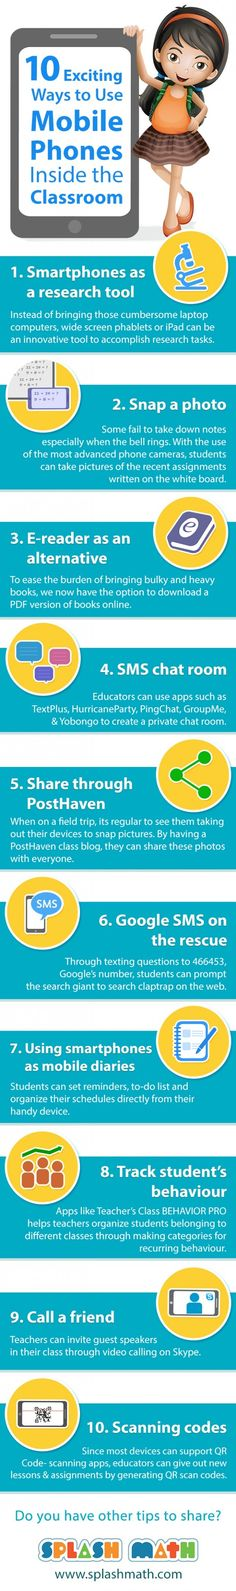 10 Ways To Use Mobile Devices in the Classroom | Edudemic